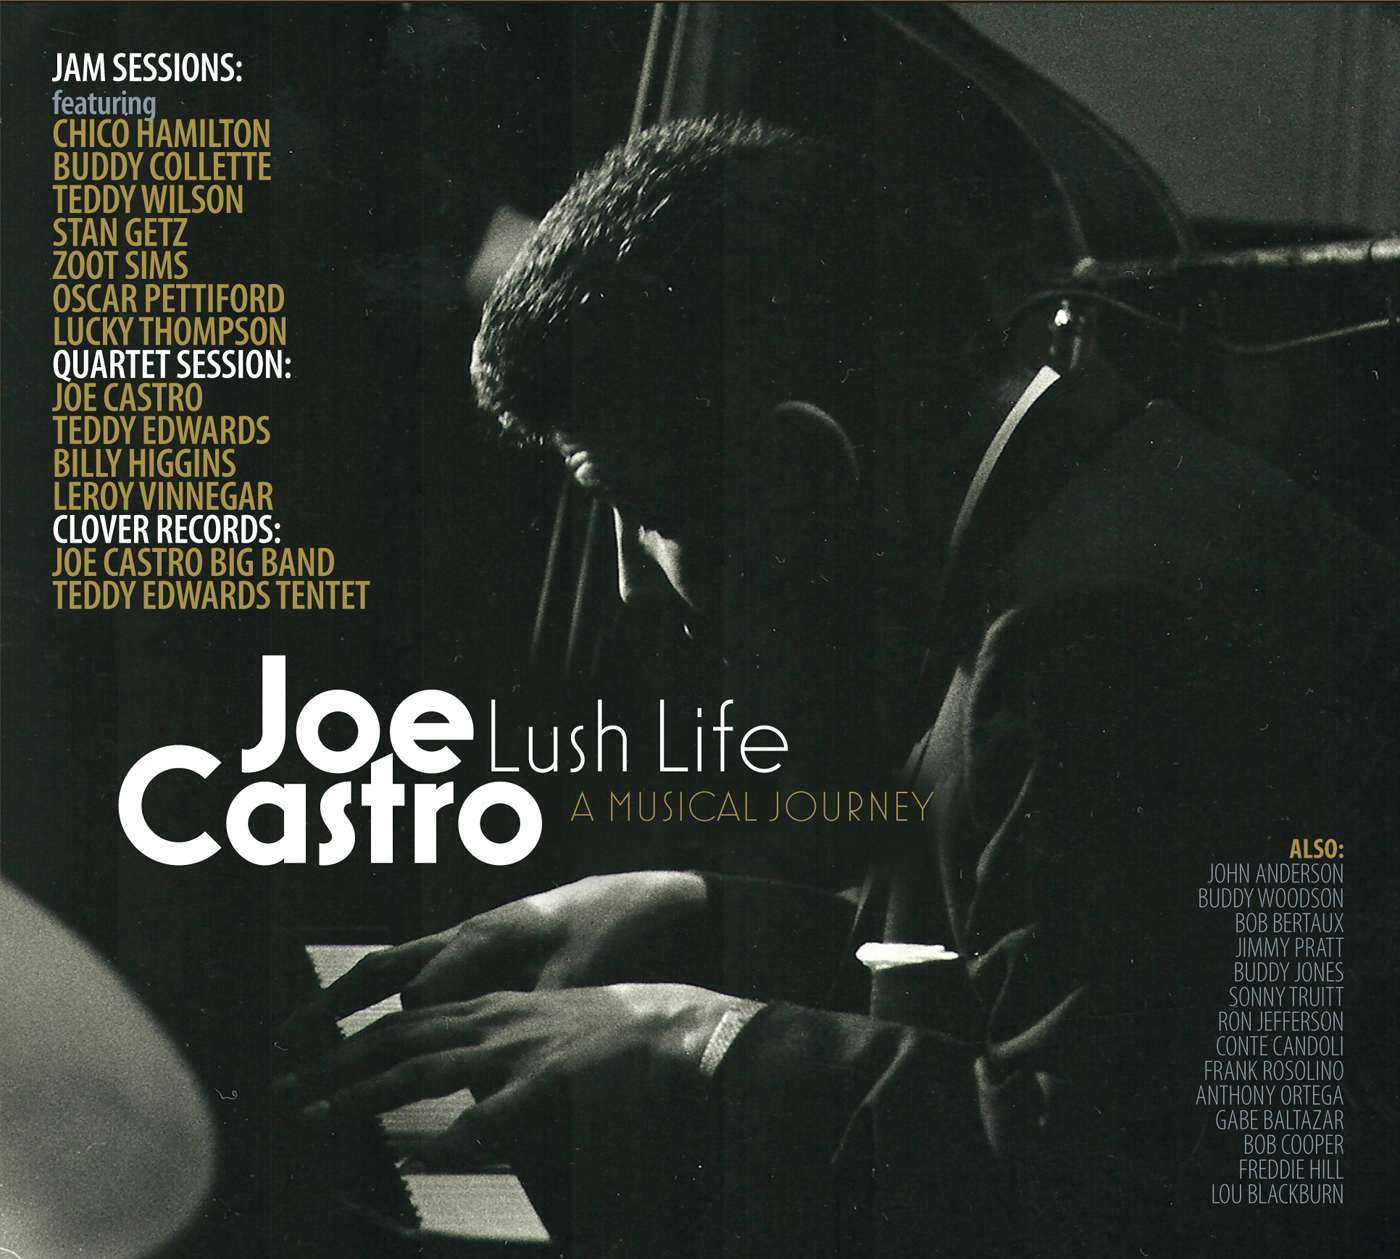 Lush Life - A Musical Journey  by Joe  Castro cover